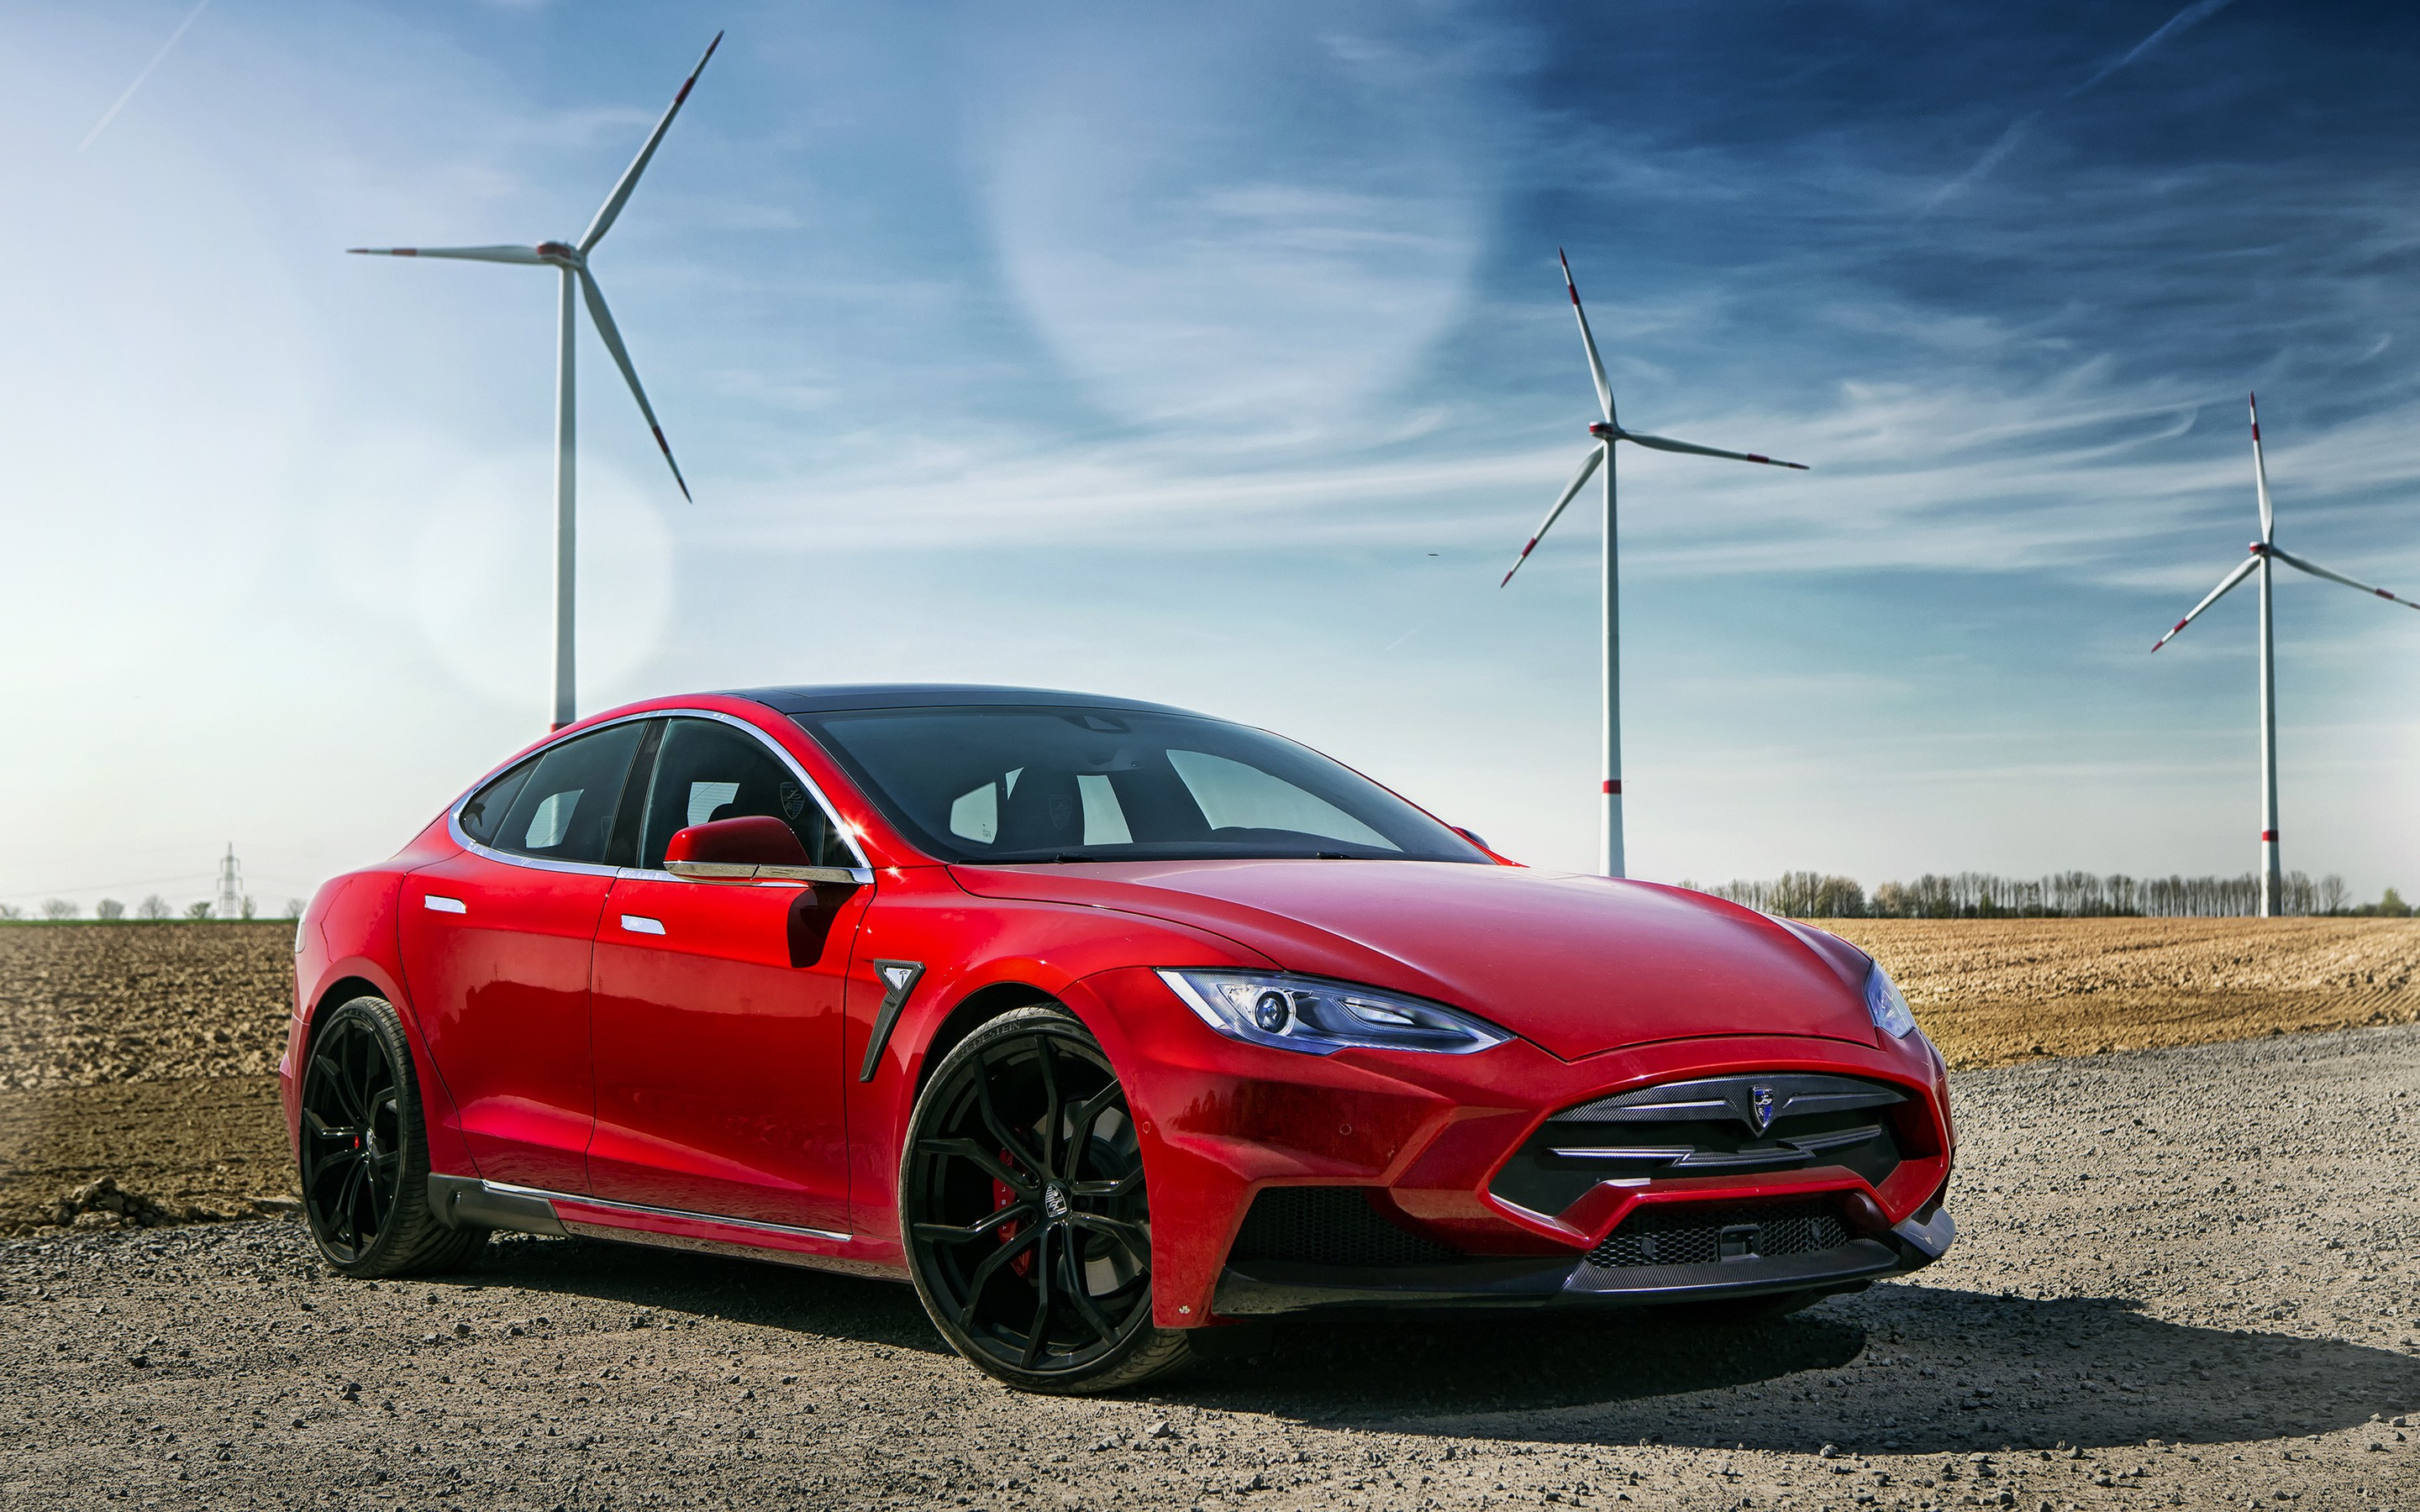 2015 Larte Design Tesla Model S Wallpaper Hd Car